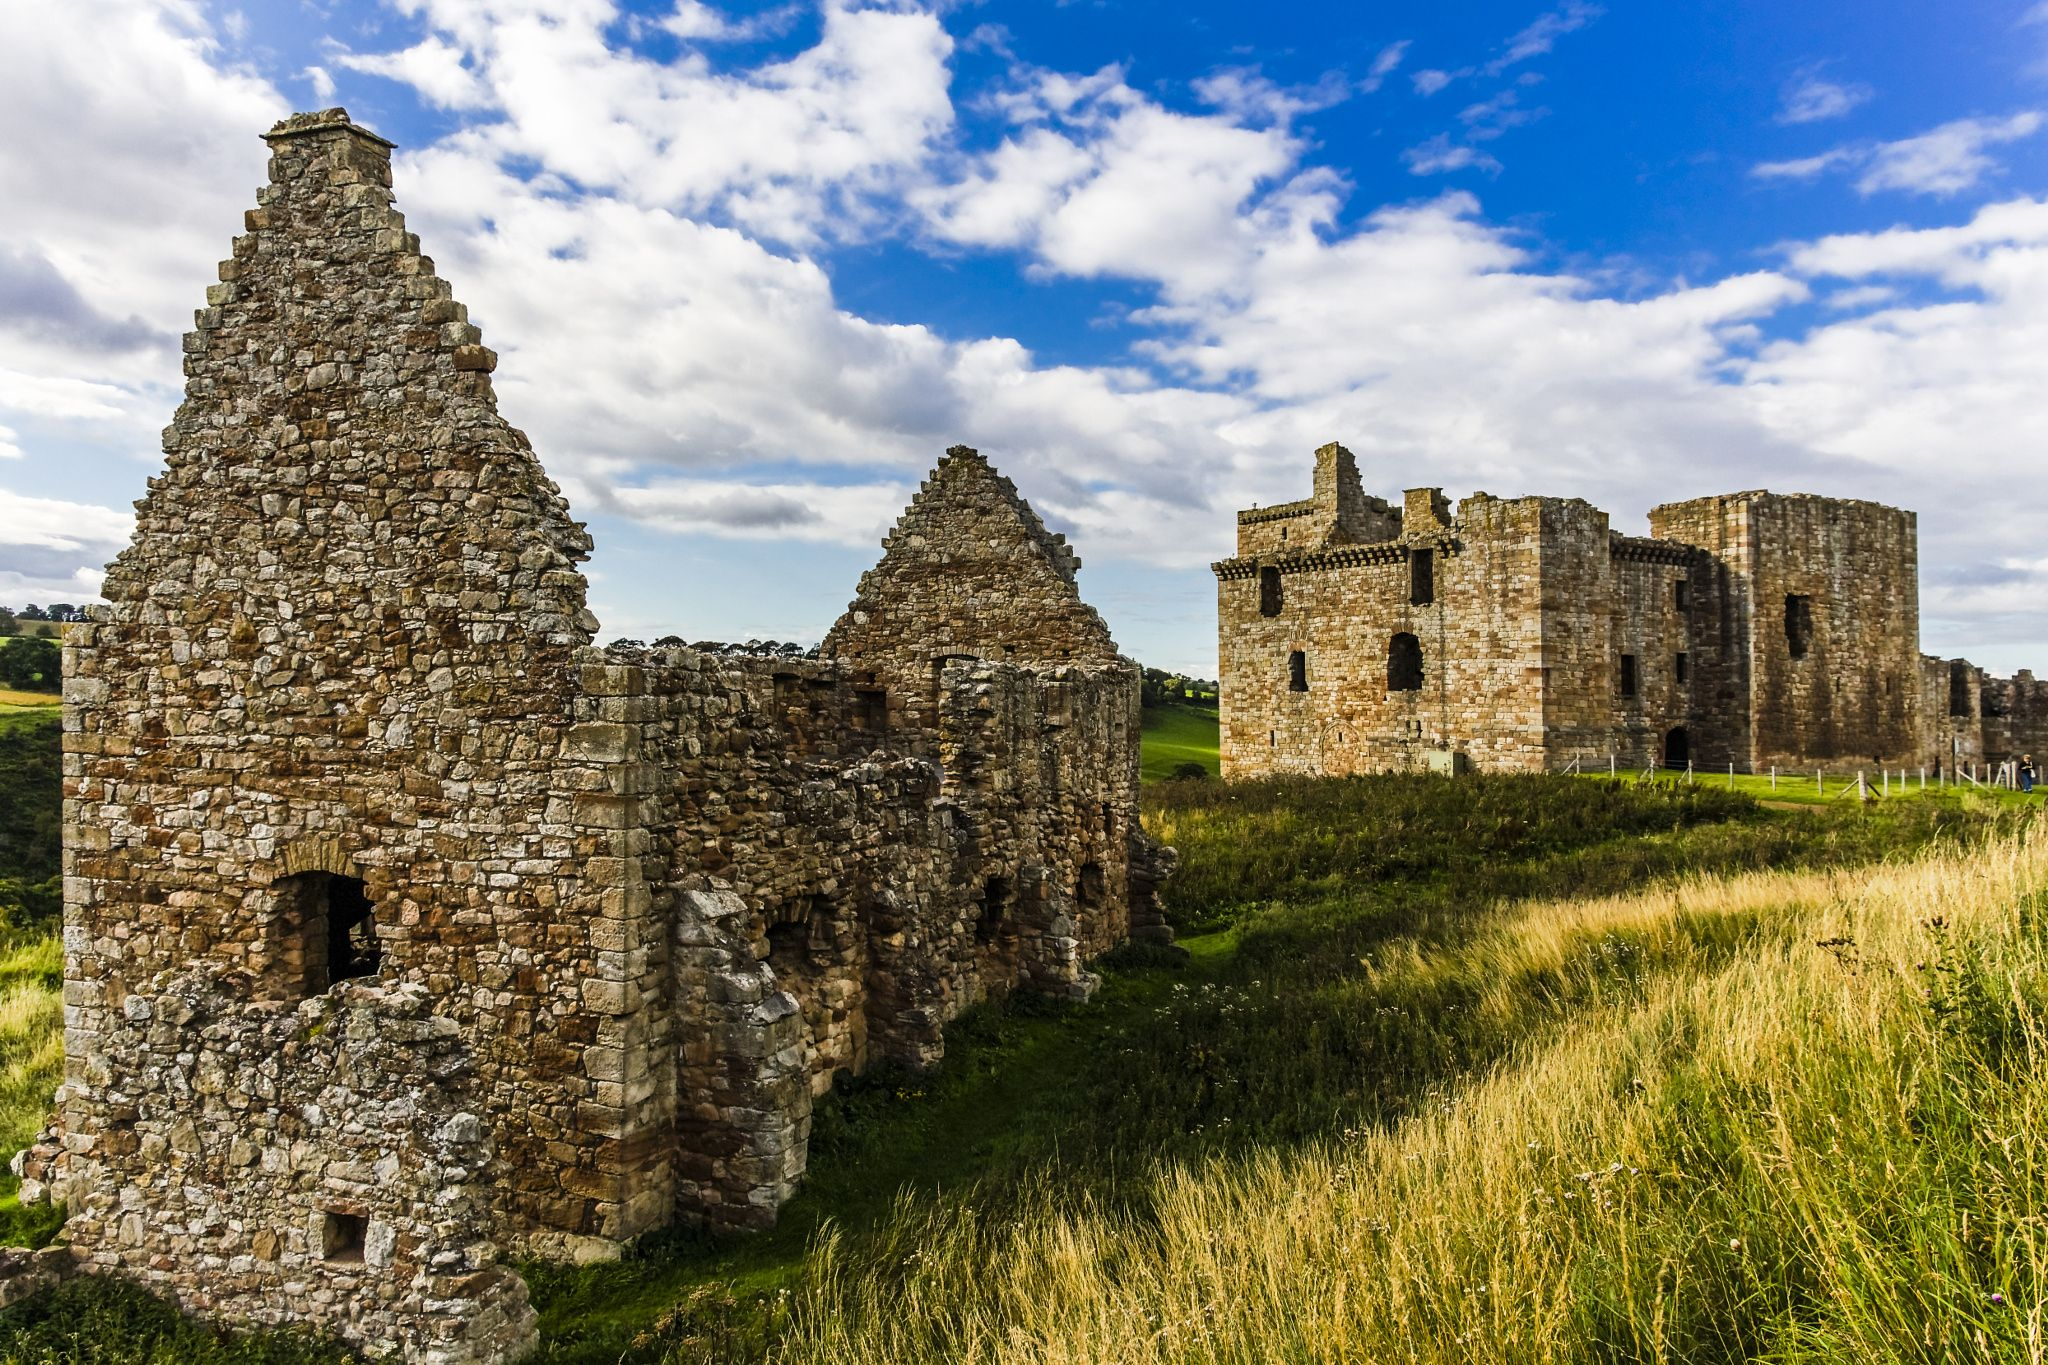 CHRICHTON Abbey & Castle by thomas h. mitchell on 500px